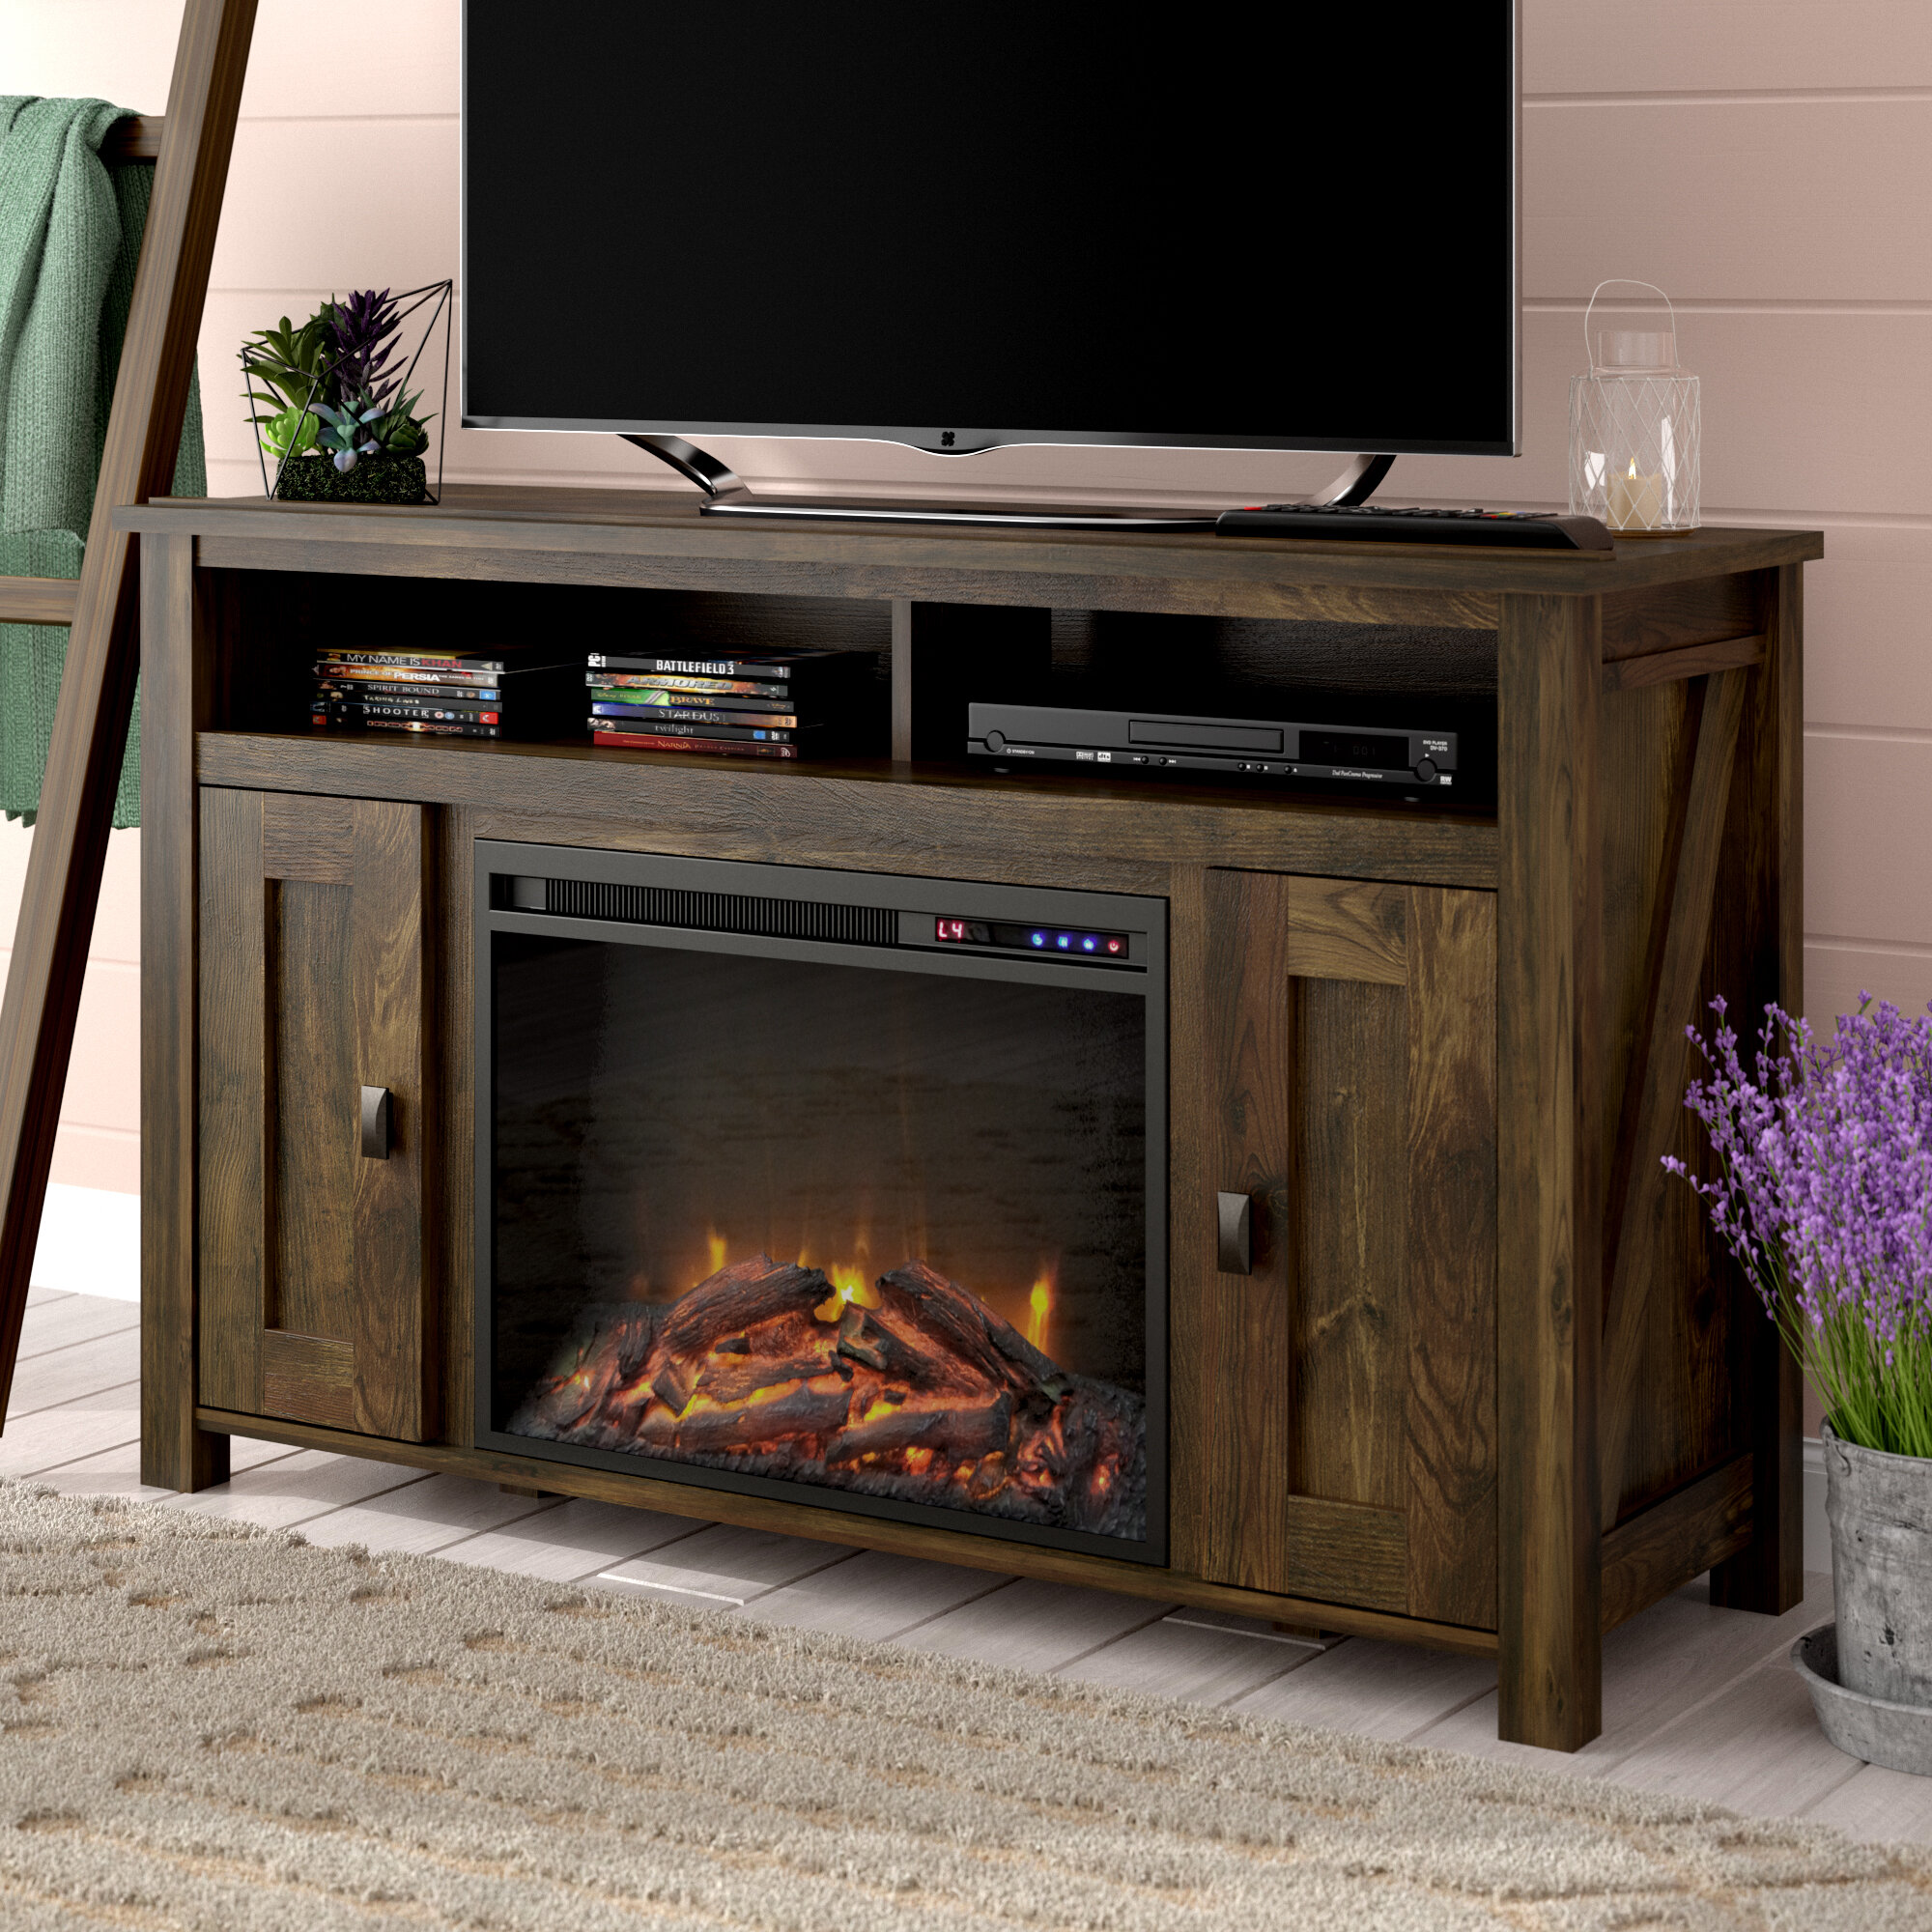 Mistana Whittier Tv Stand For Tvs Up To 50 With Electric Fireplace Included Reviews Wayfair